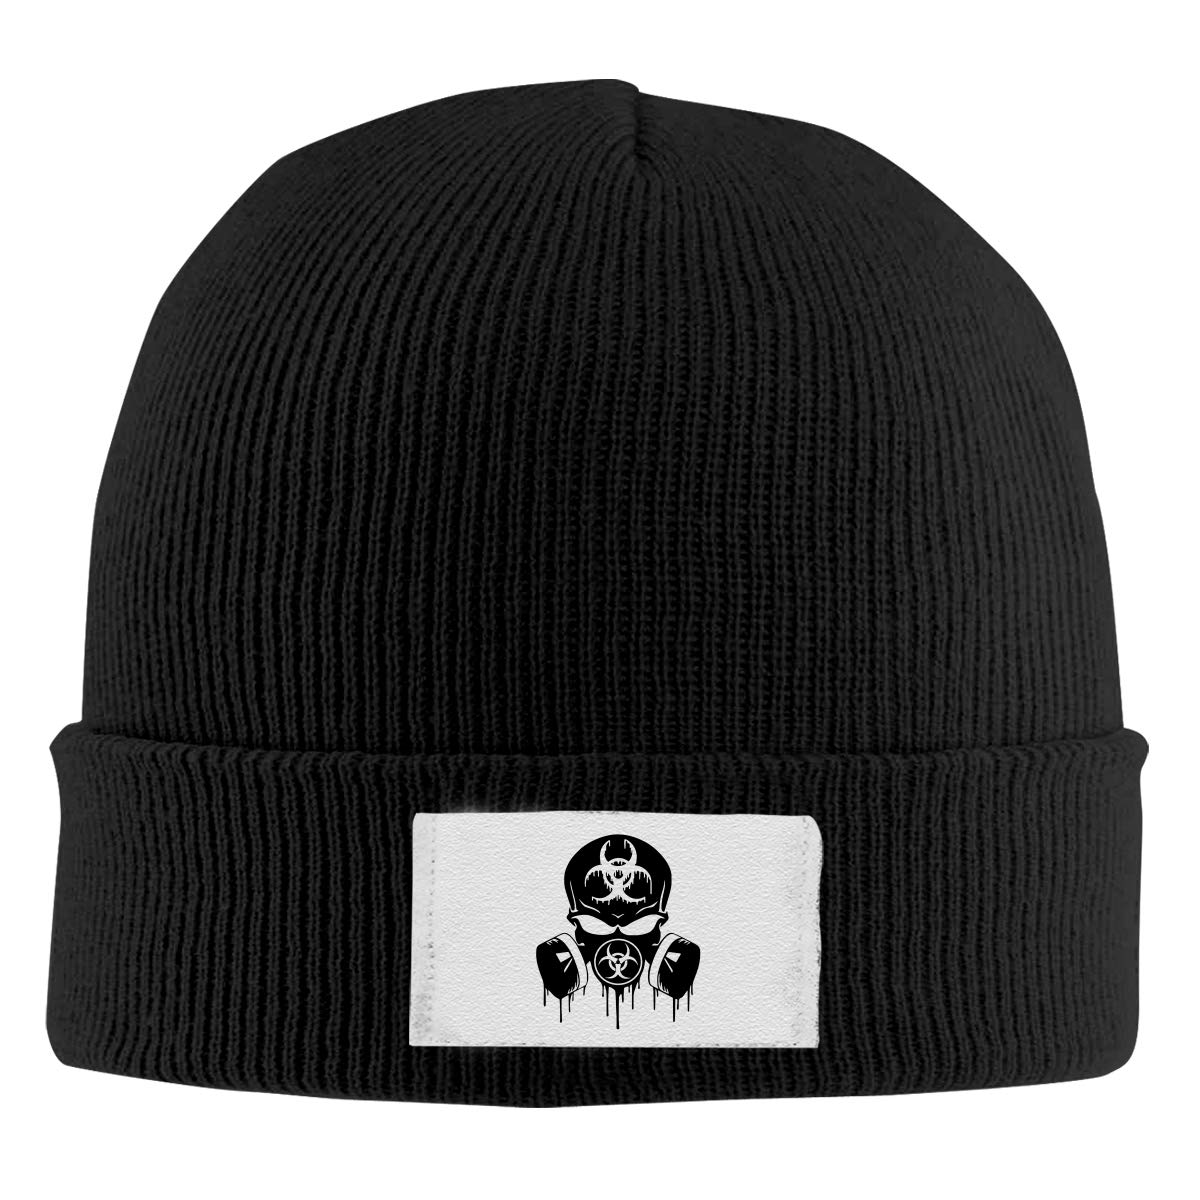 Unisex Stylish Slouch Beanie Hats Black Blk Skull Dripping Biohazard Respirator Top Level Beanie Men Women